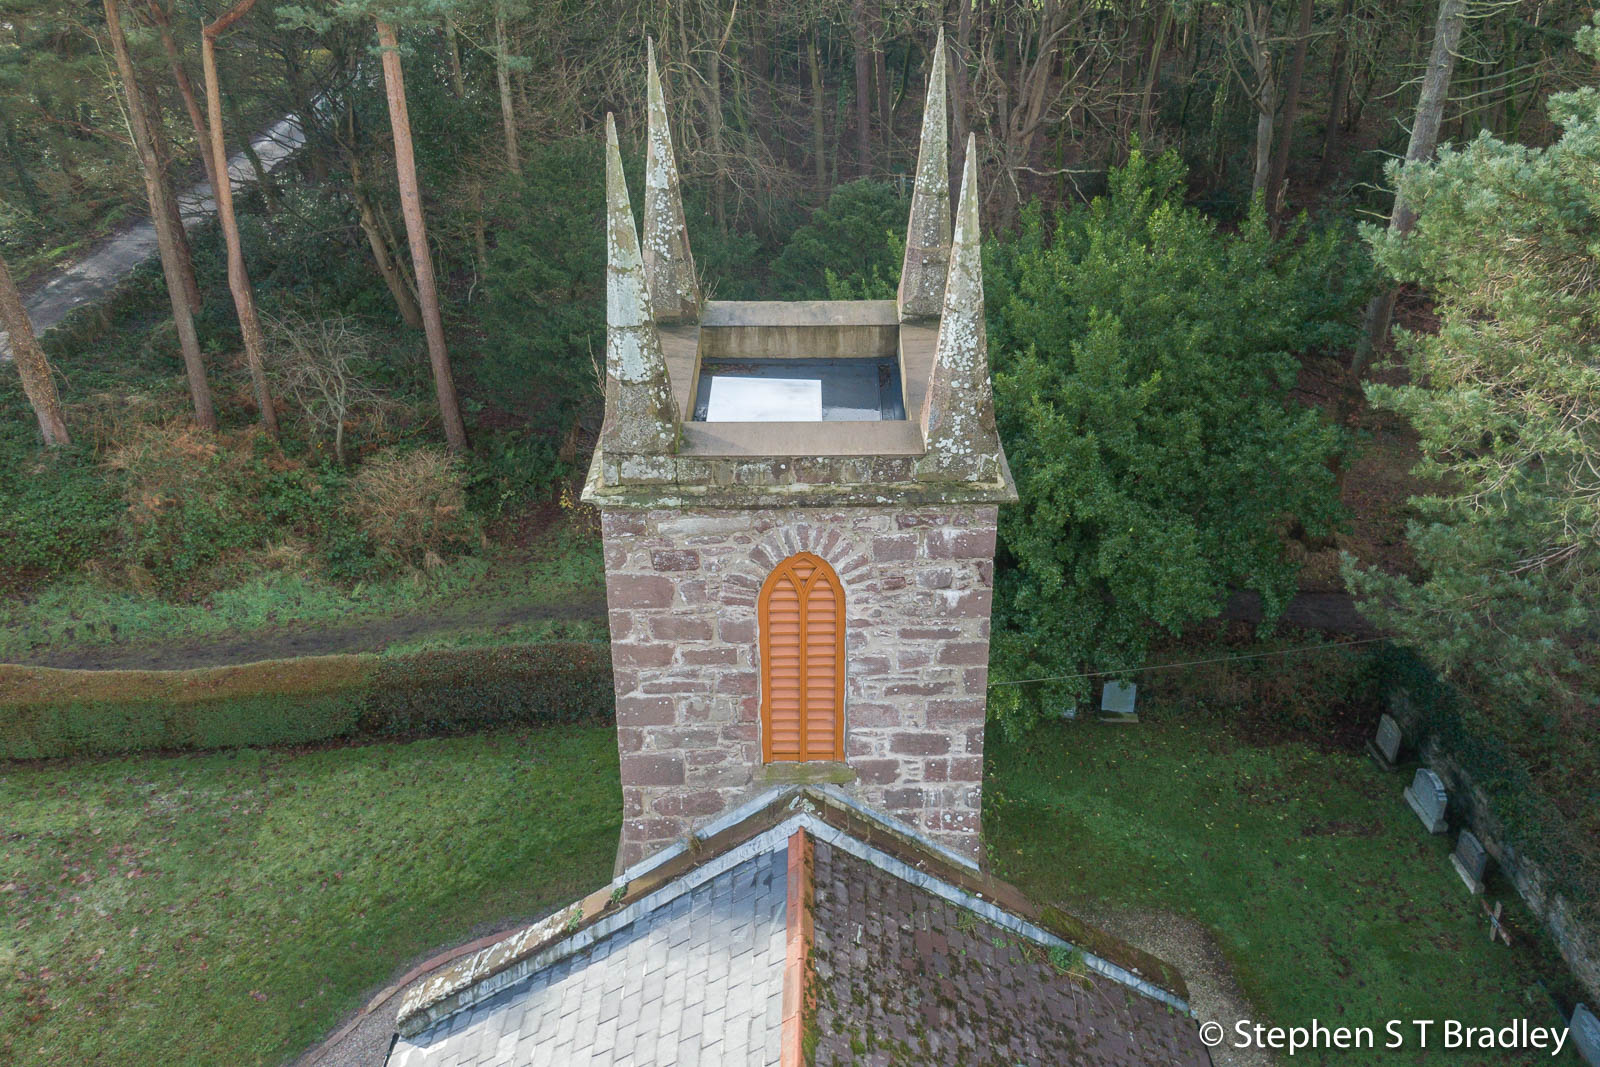 Aerial drone photography and video production services Dublin and Ireland portfolio - The Old Church Centre, Cushendun, aerial photo 0001-5